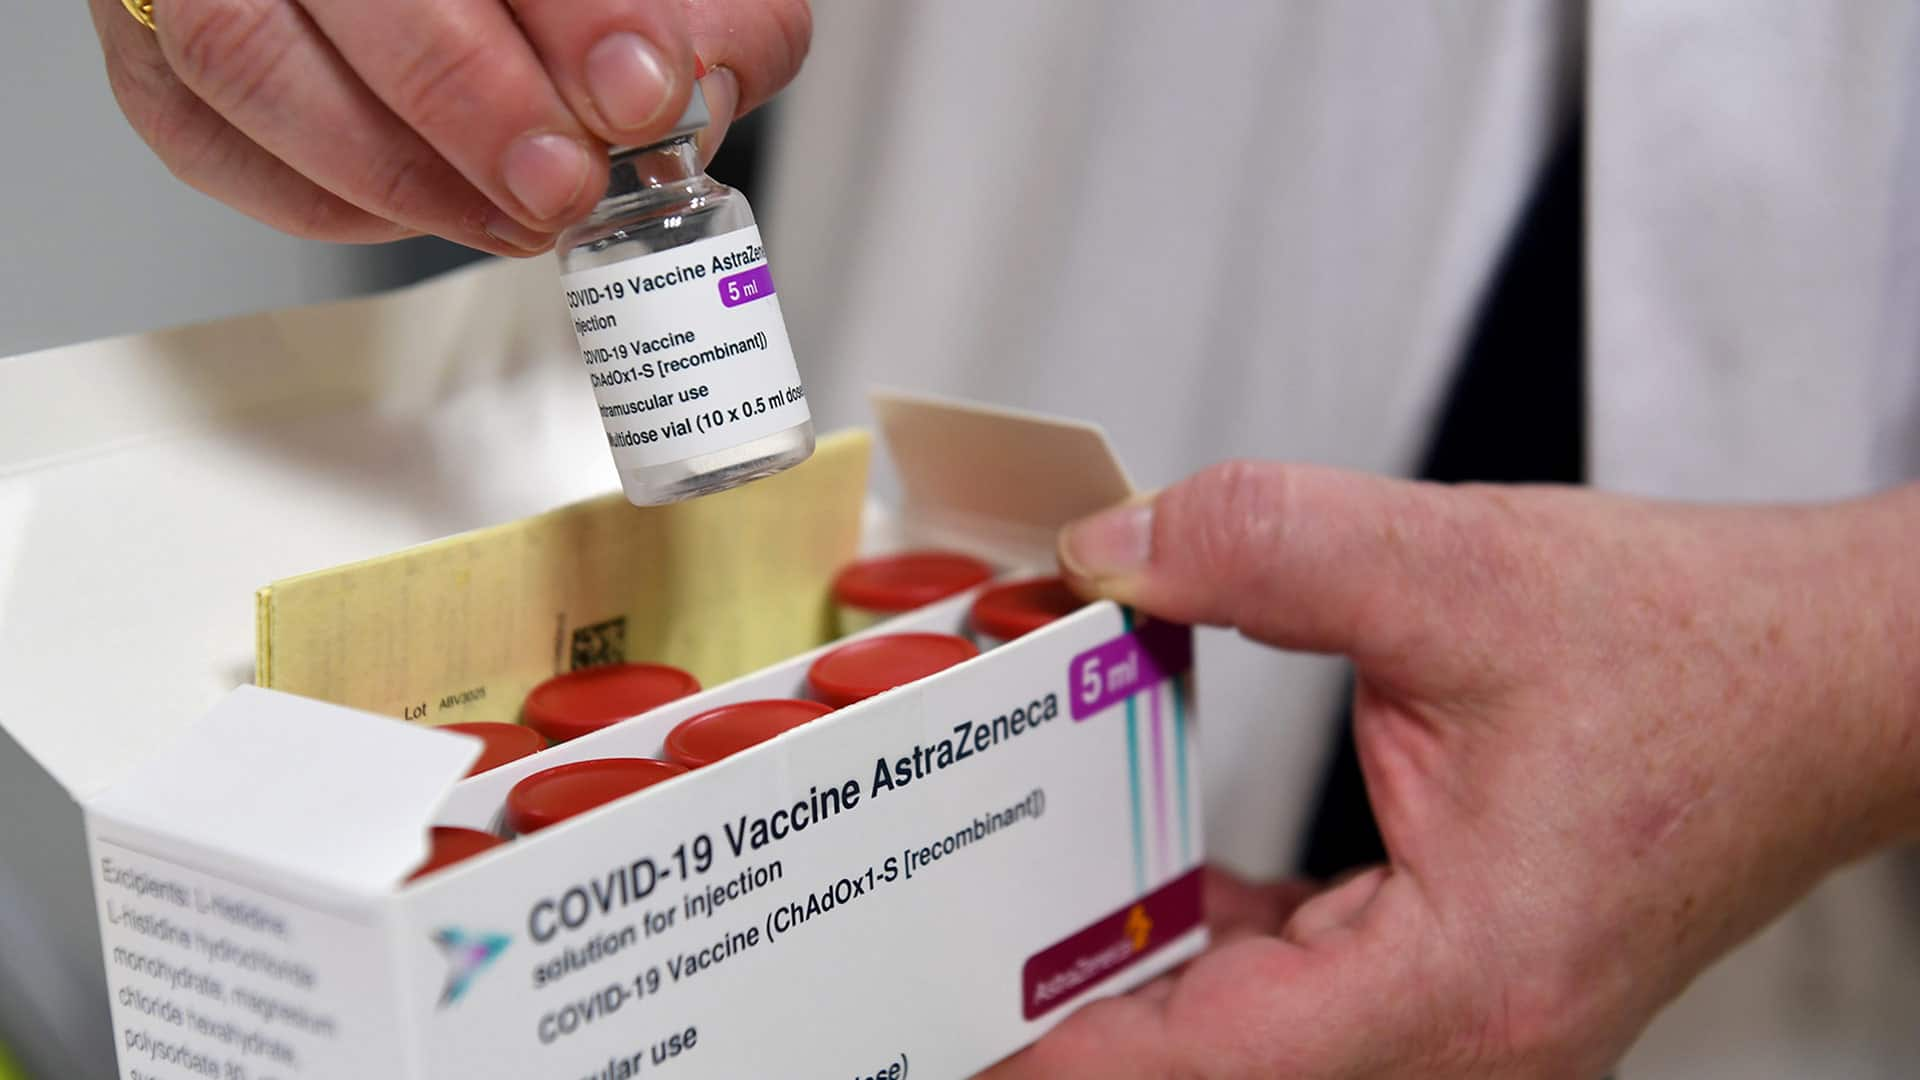 Health workers dissatisfied they are receiving 'least efficacious vaccine'